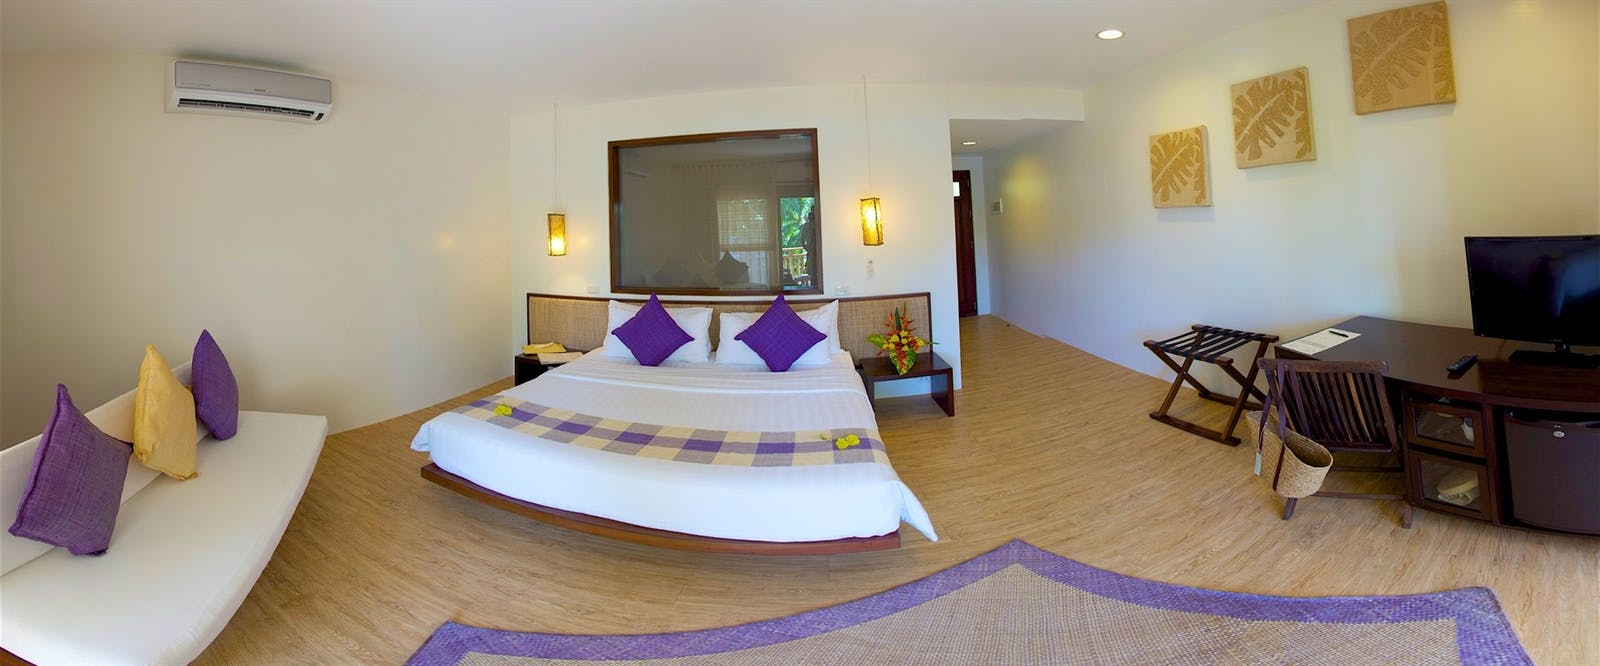 Deluxe King Room at Amun Ini Beach Resort & Spa, Philippines